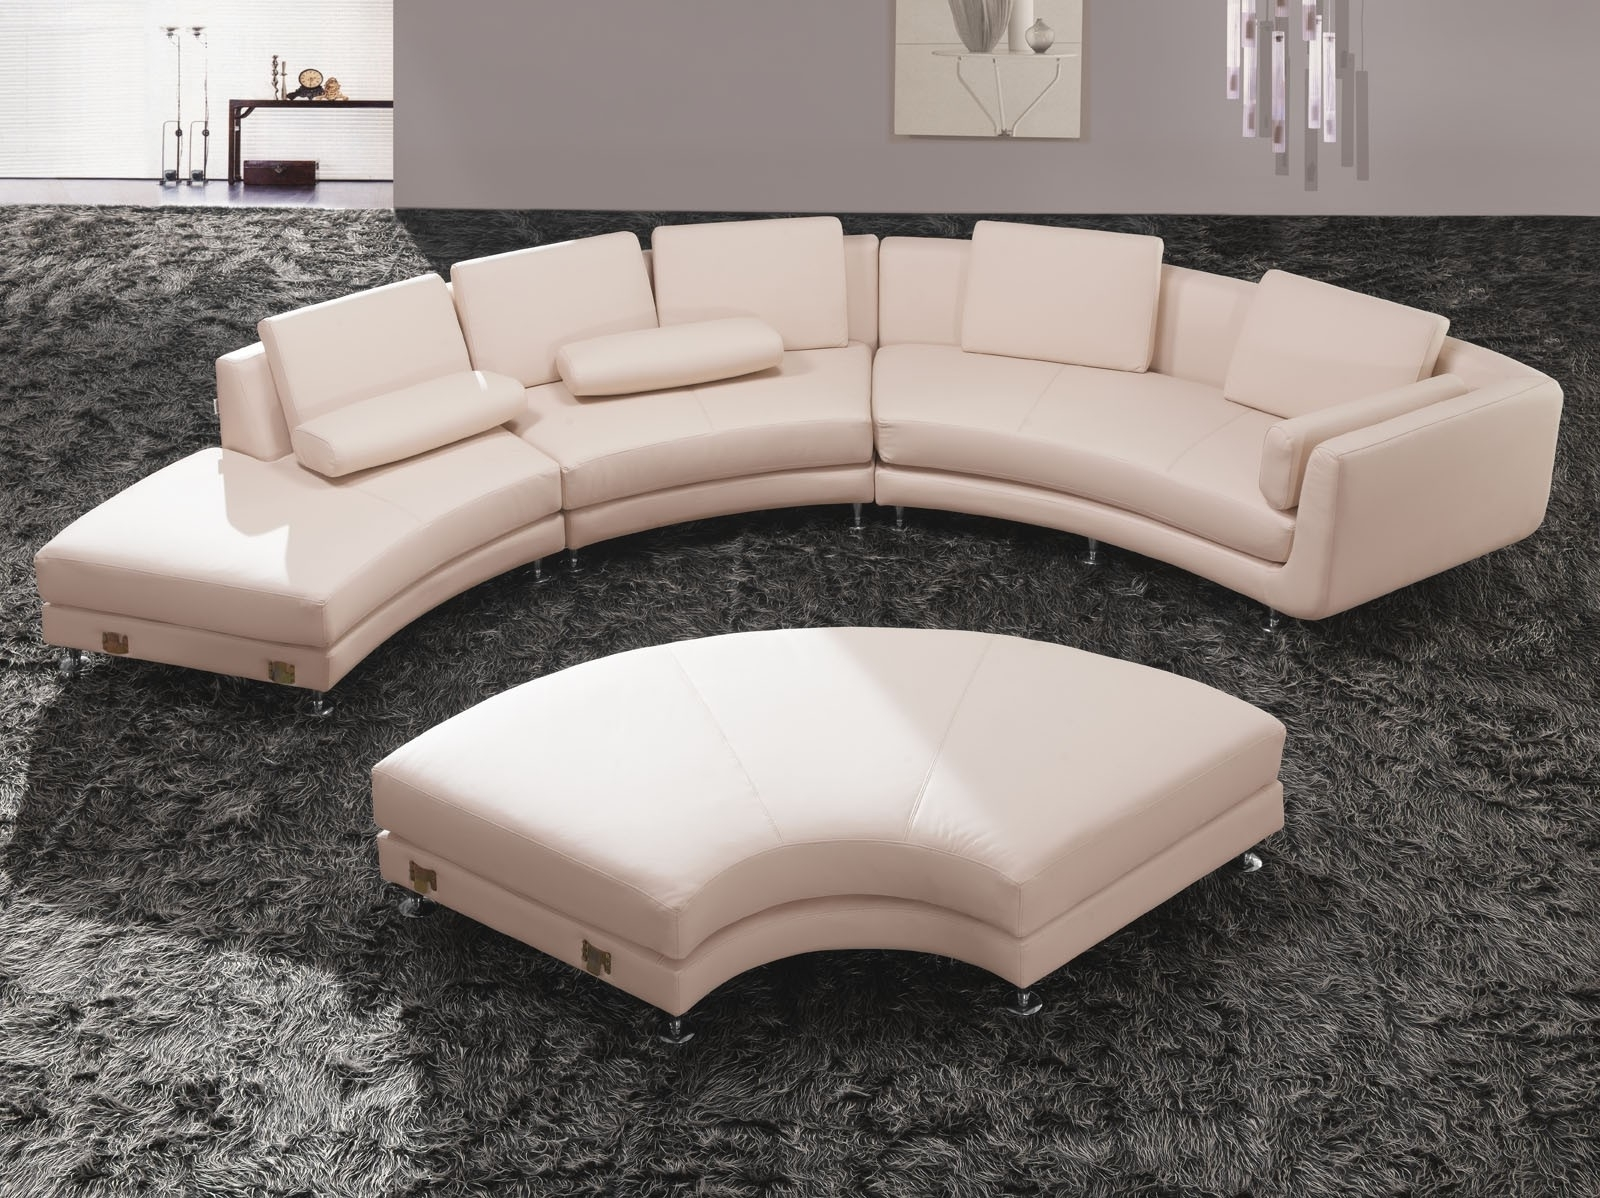 Well Liked Sofa : Glamorous Round Sectional Sofa Bed Curved Leather Tufted Pertaining To Round Sectional Sofas (View 5 of 15)